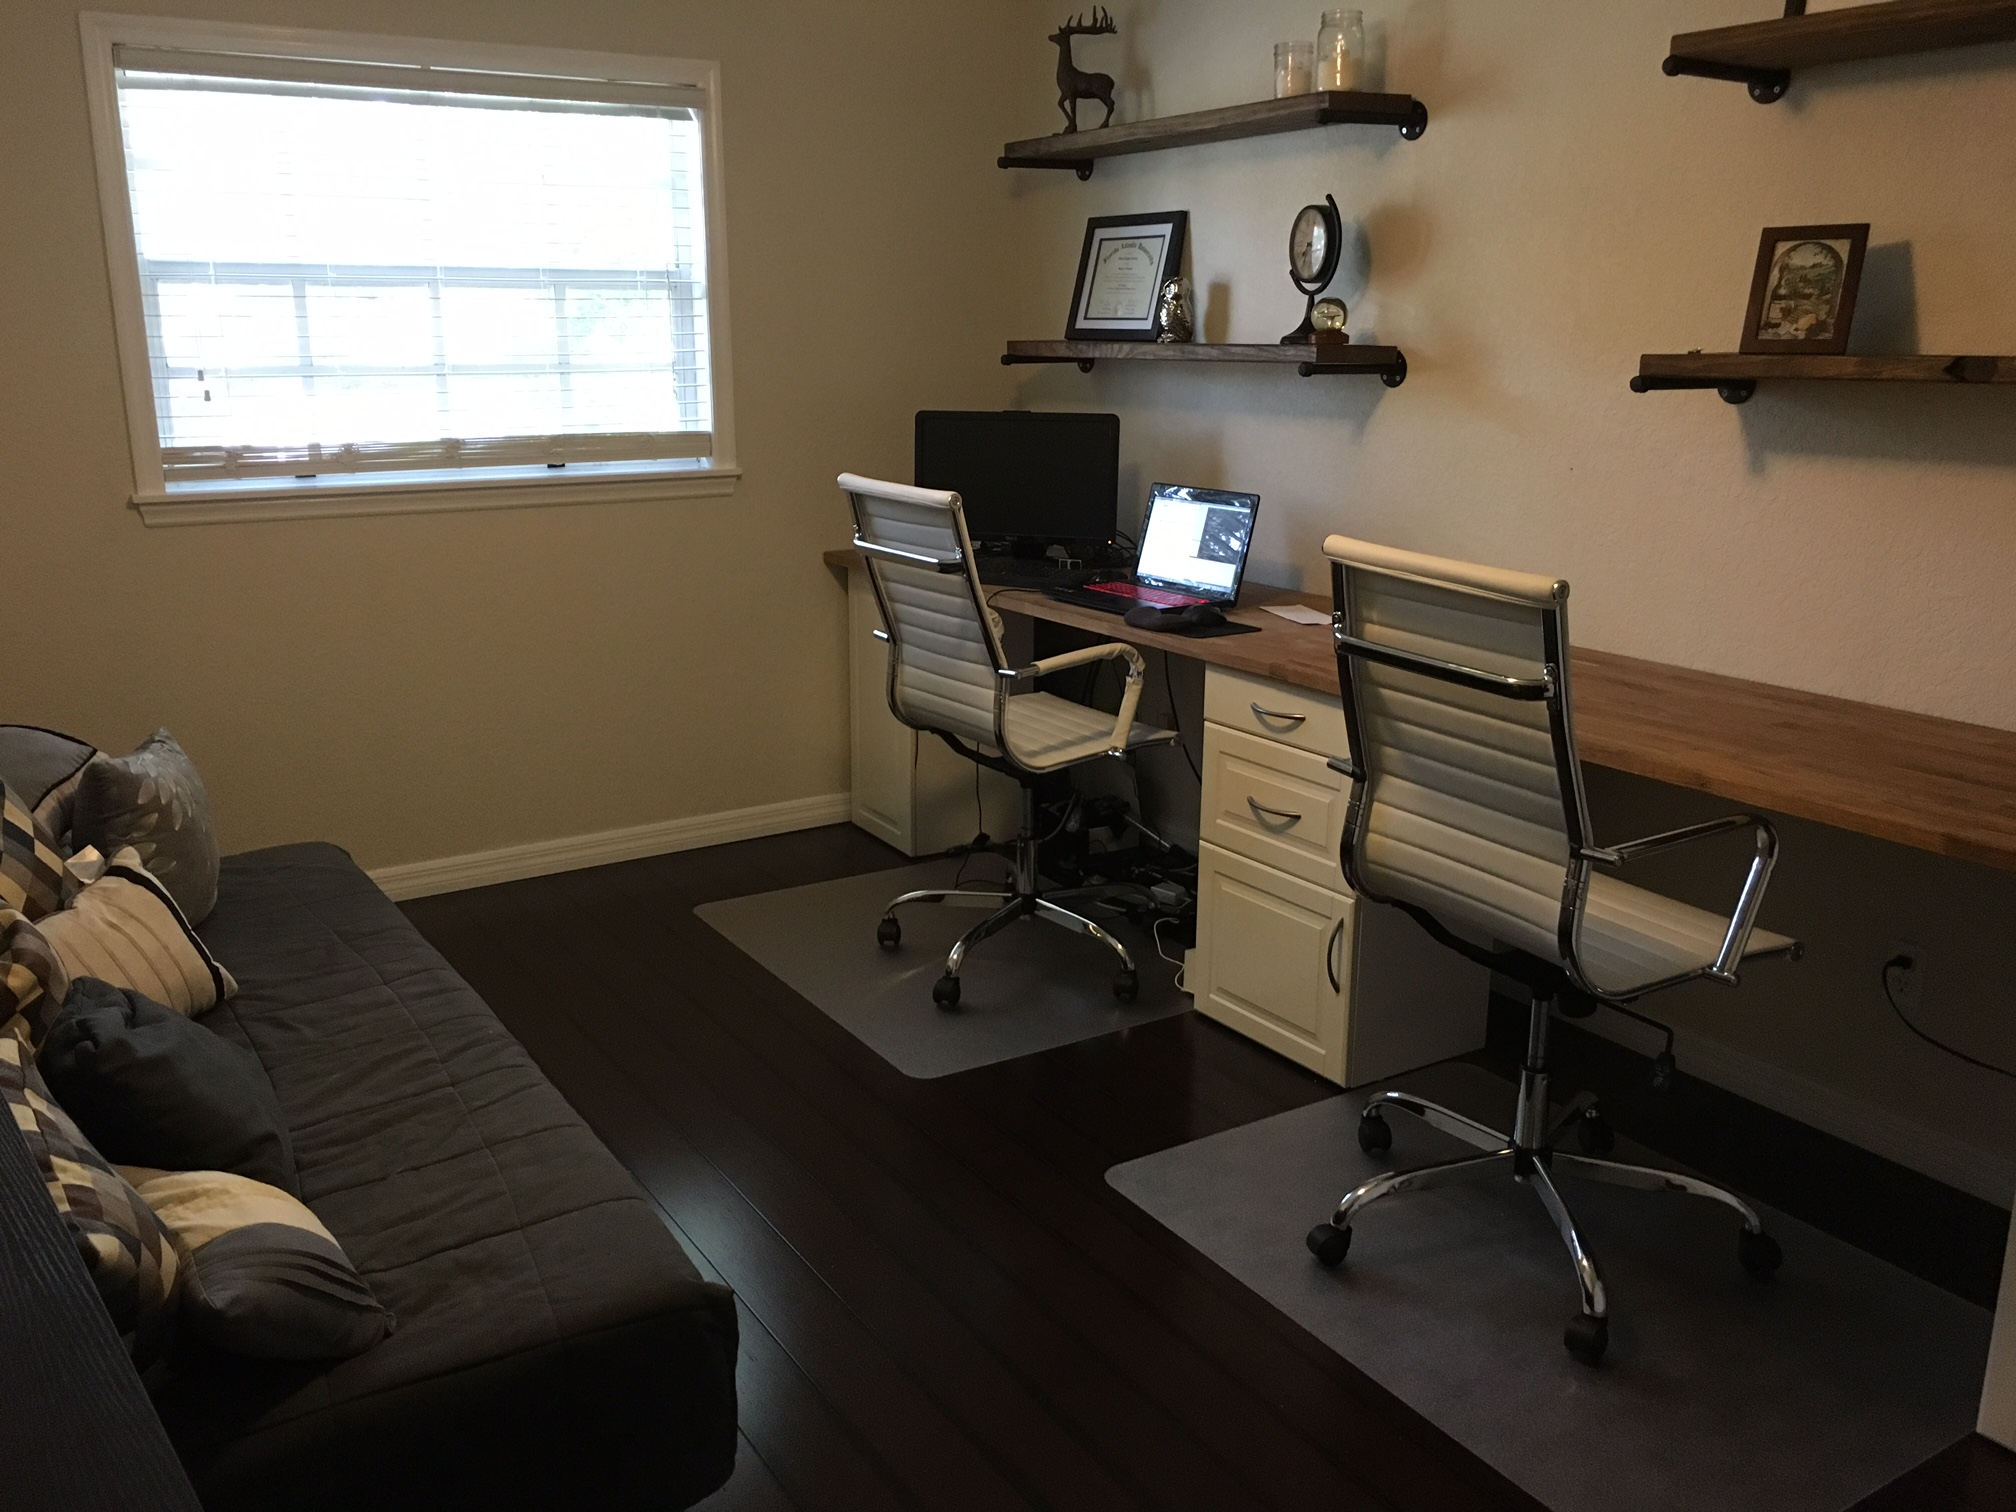 diy office space. I Had Looked Up DIY Office Spaces Online And A Lot Of Them Call For You To Cut Out Your Baseboards Install Cabinets. Wanted My Look Like Diy Space B